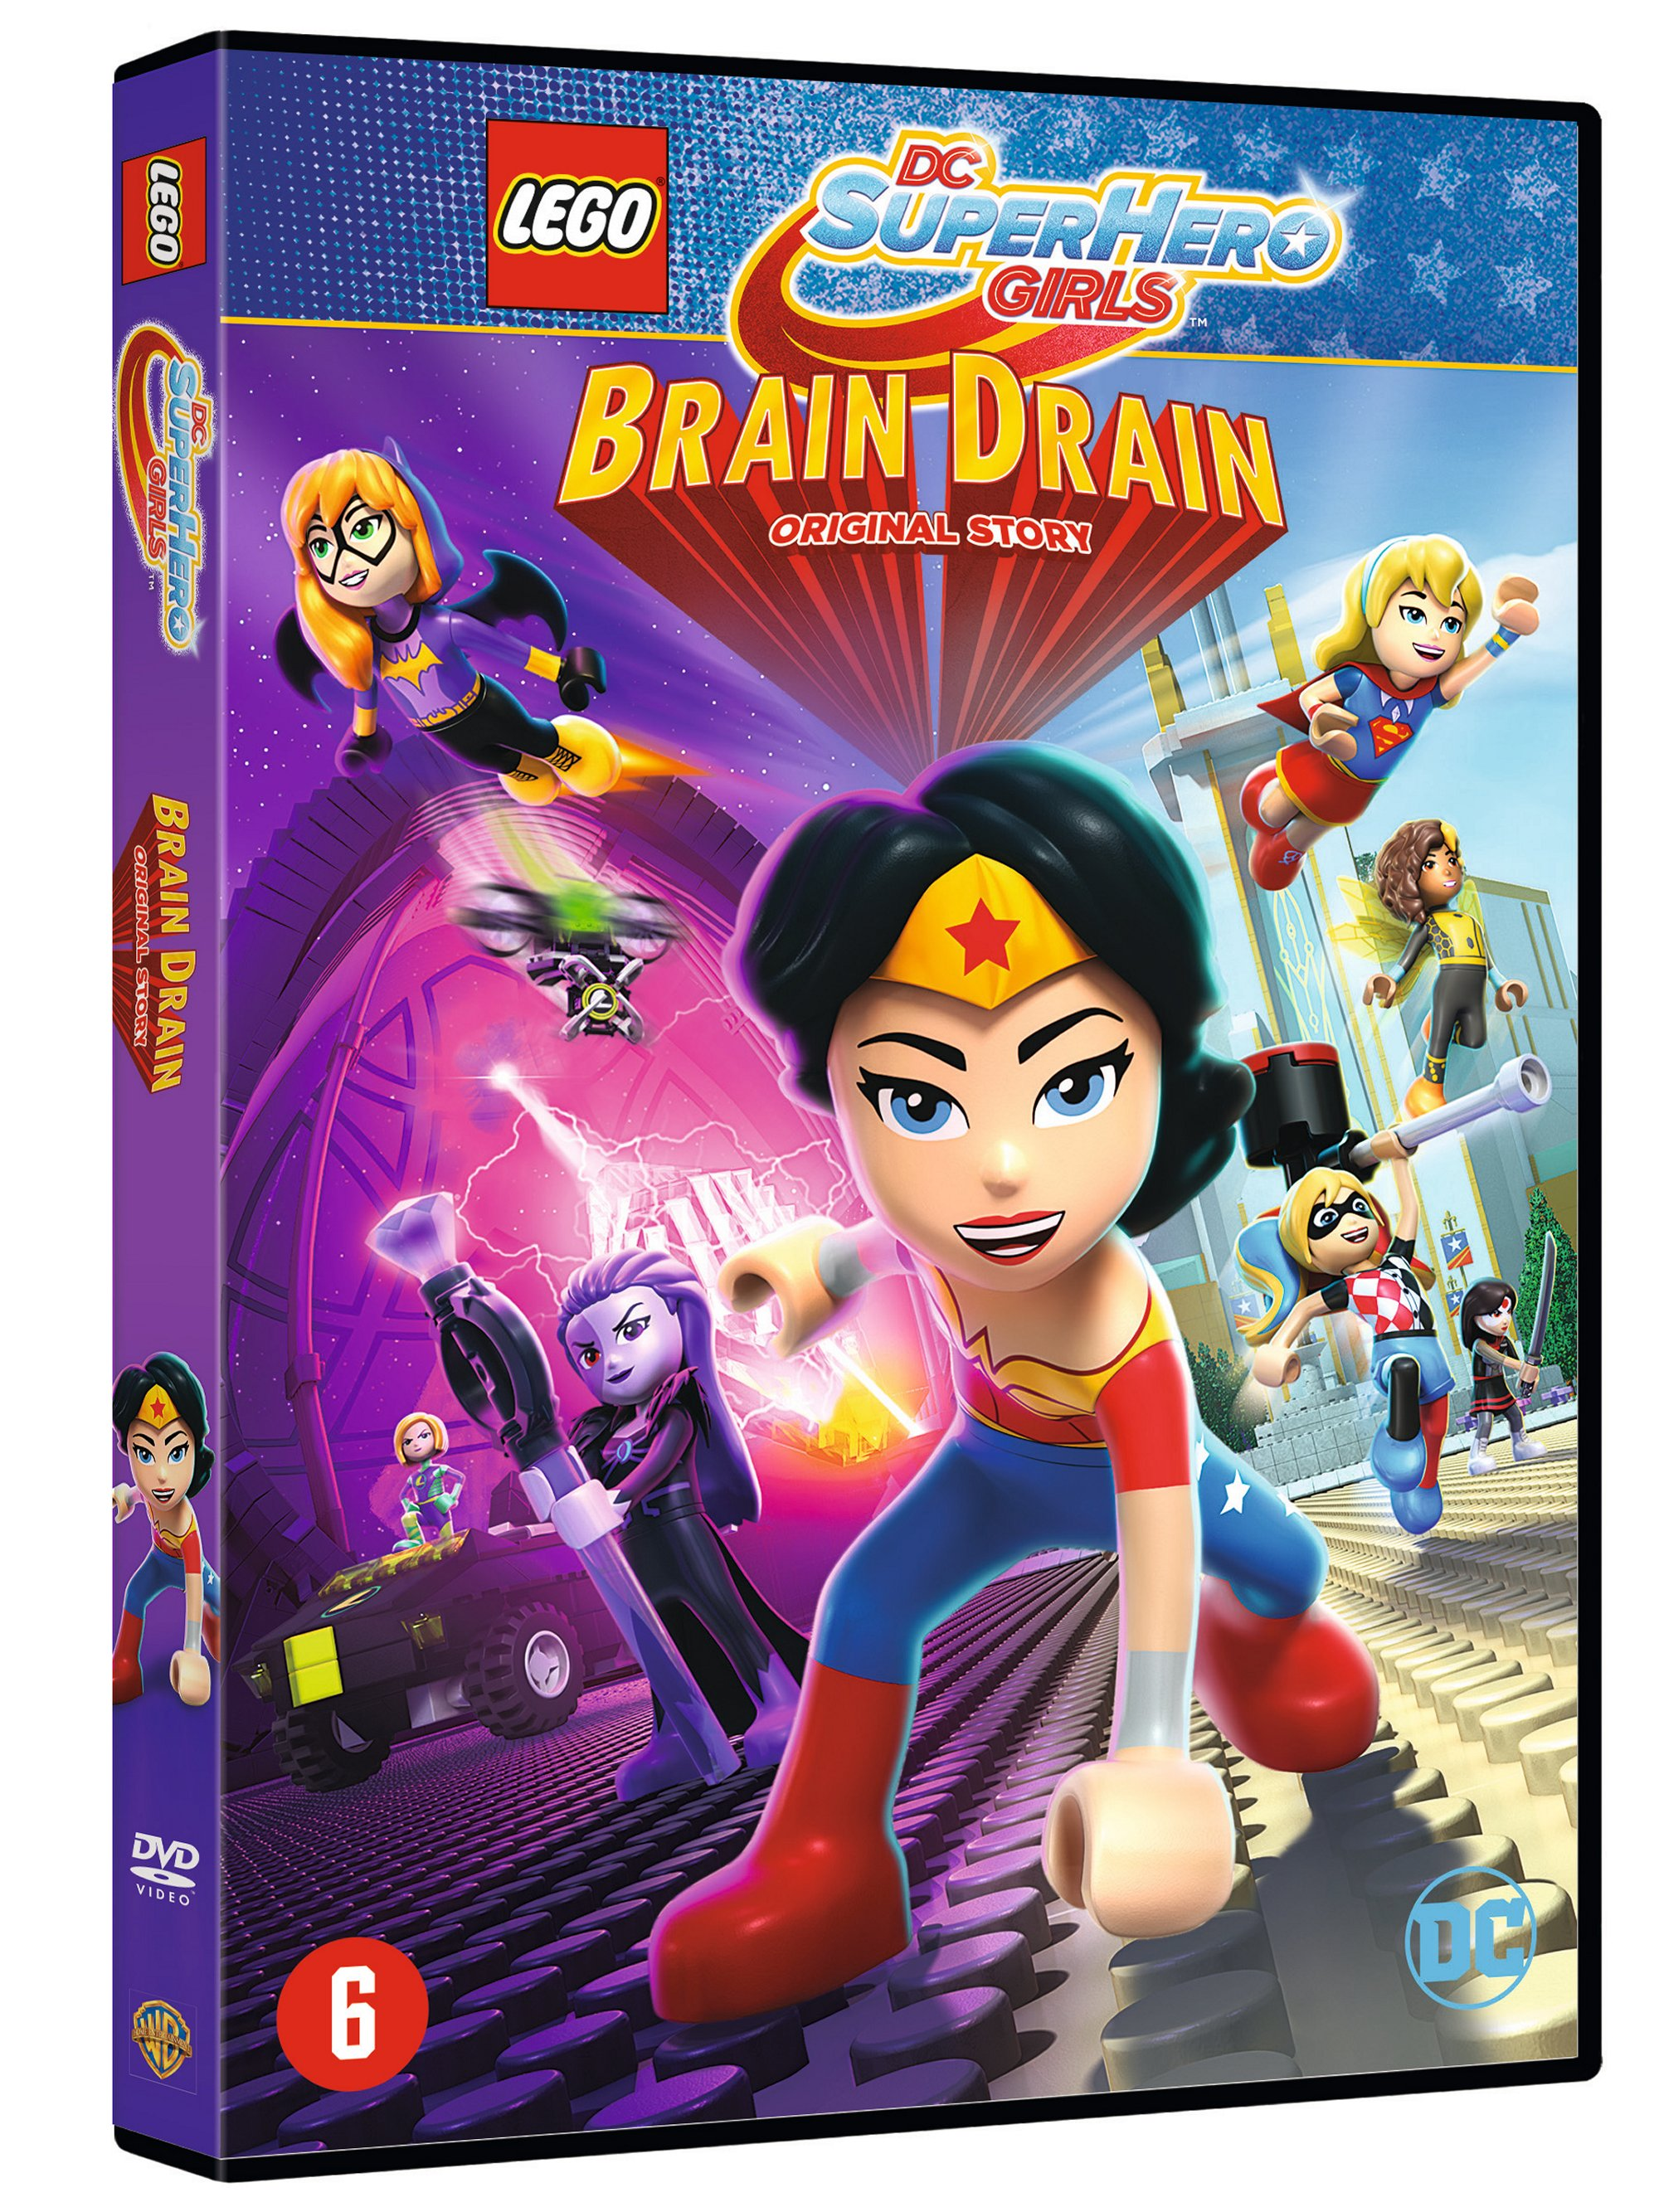 Review : LEGO DC SuperHero Girls – Brain Drain